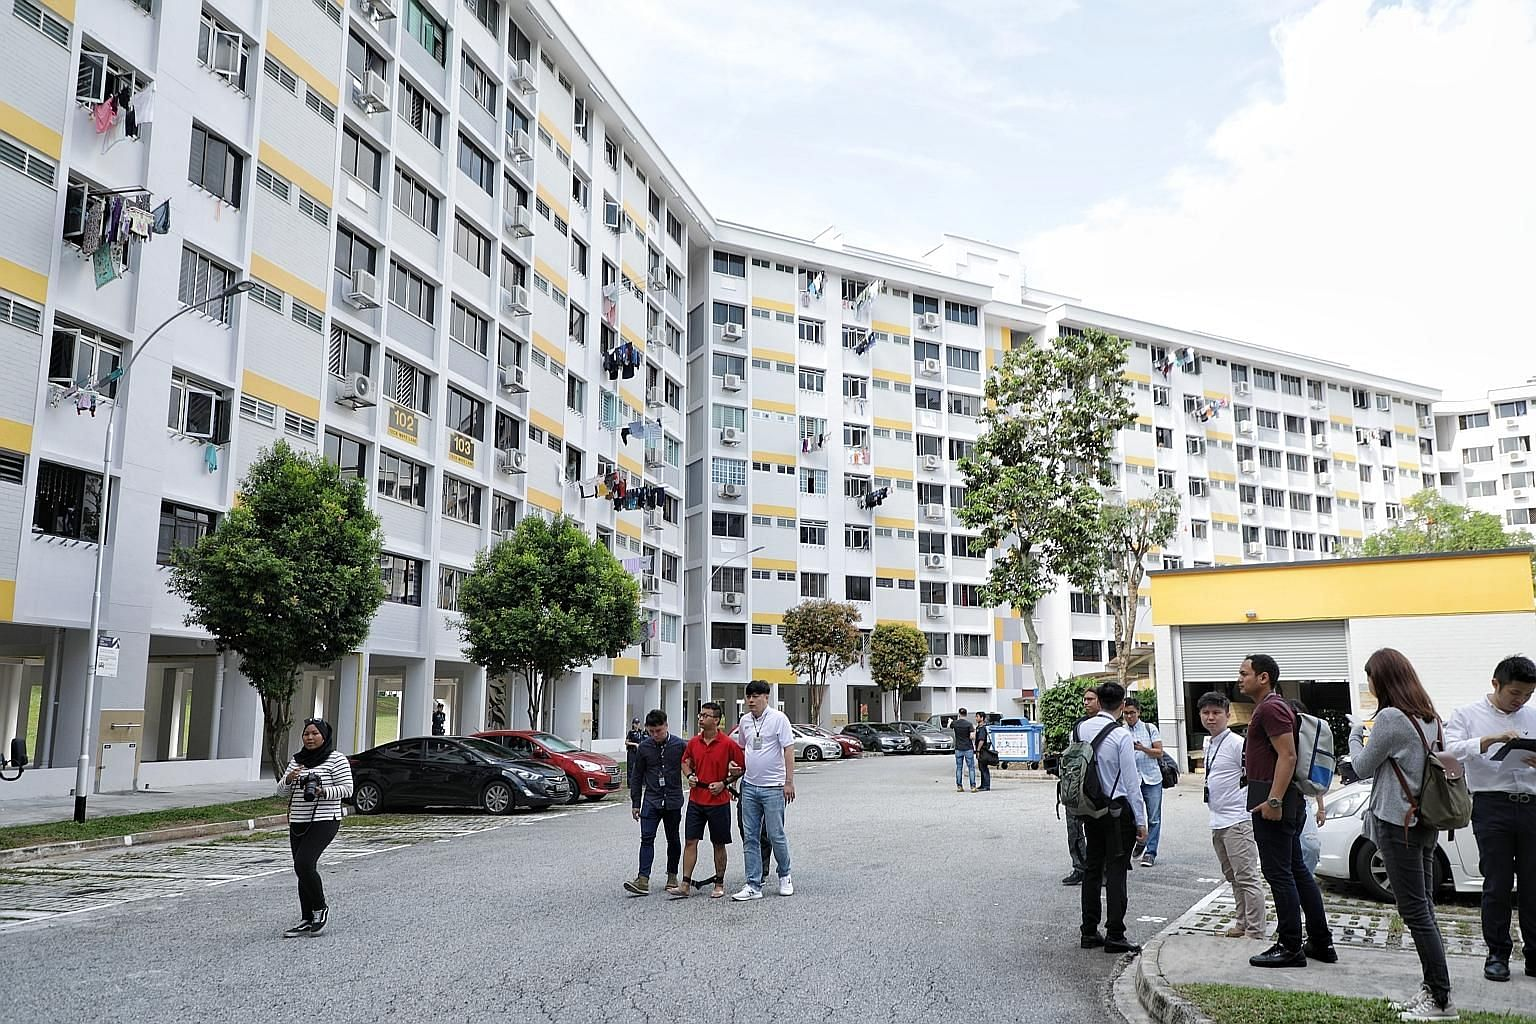 Police investigators near Block 102 Teck Whye Lane yesterday with one of the men accused of rioting at a void deck last Thursday.